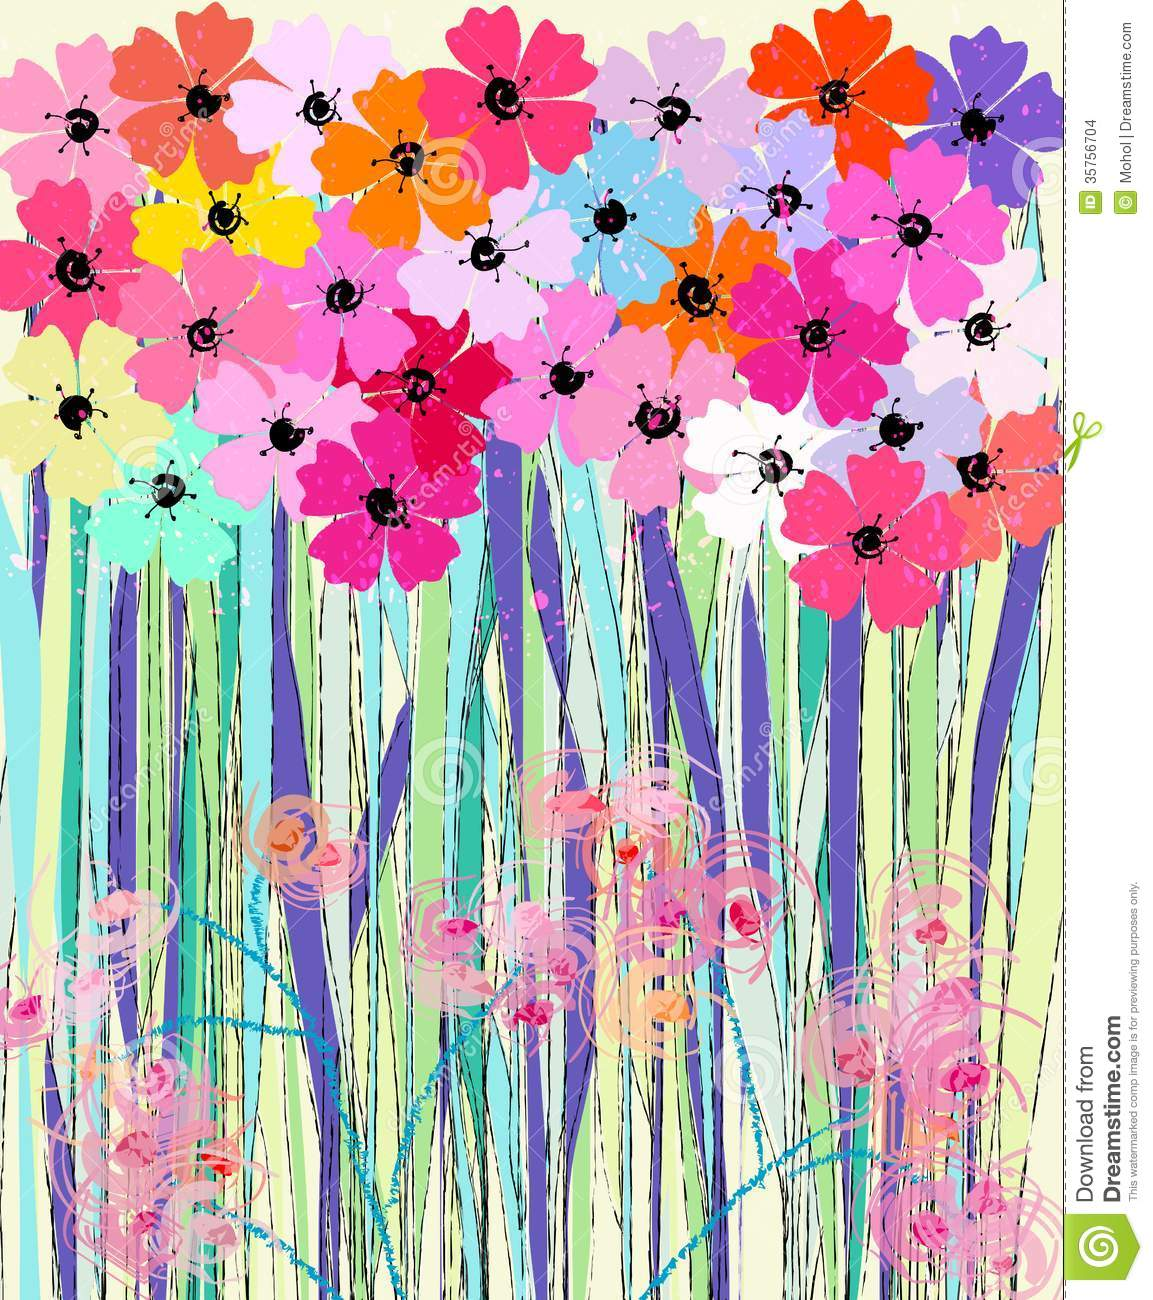 Spring Flowers Illustration Stock Vector Illustration Of Fabric